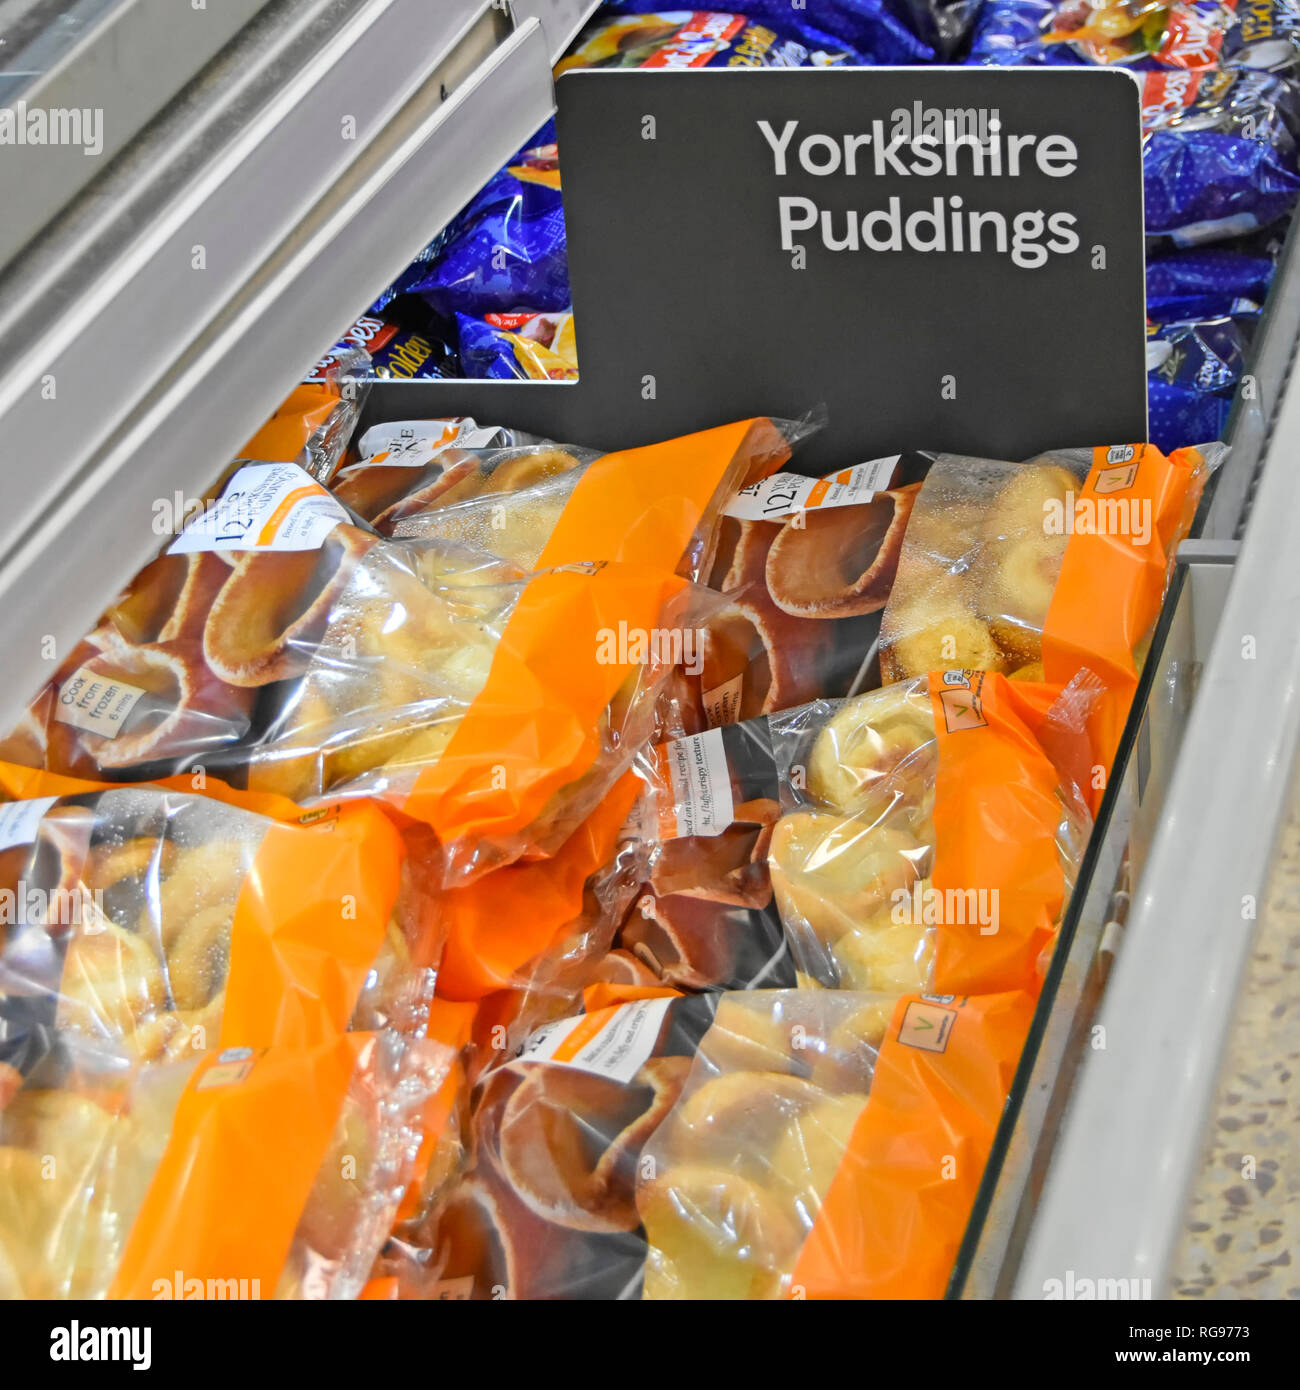 Close up of sign for Yorkshire Pudding for sale in plastic bag packaging in frozen food supermarket store self service cold display cabinet England UK - Stock Image